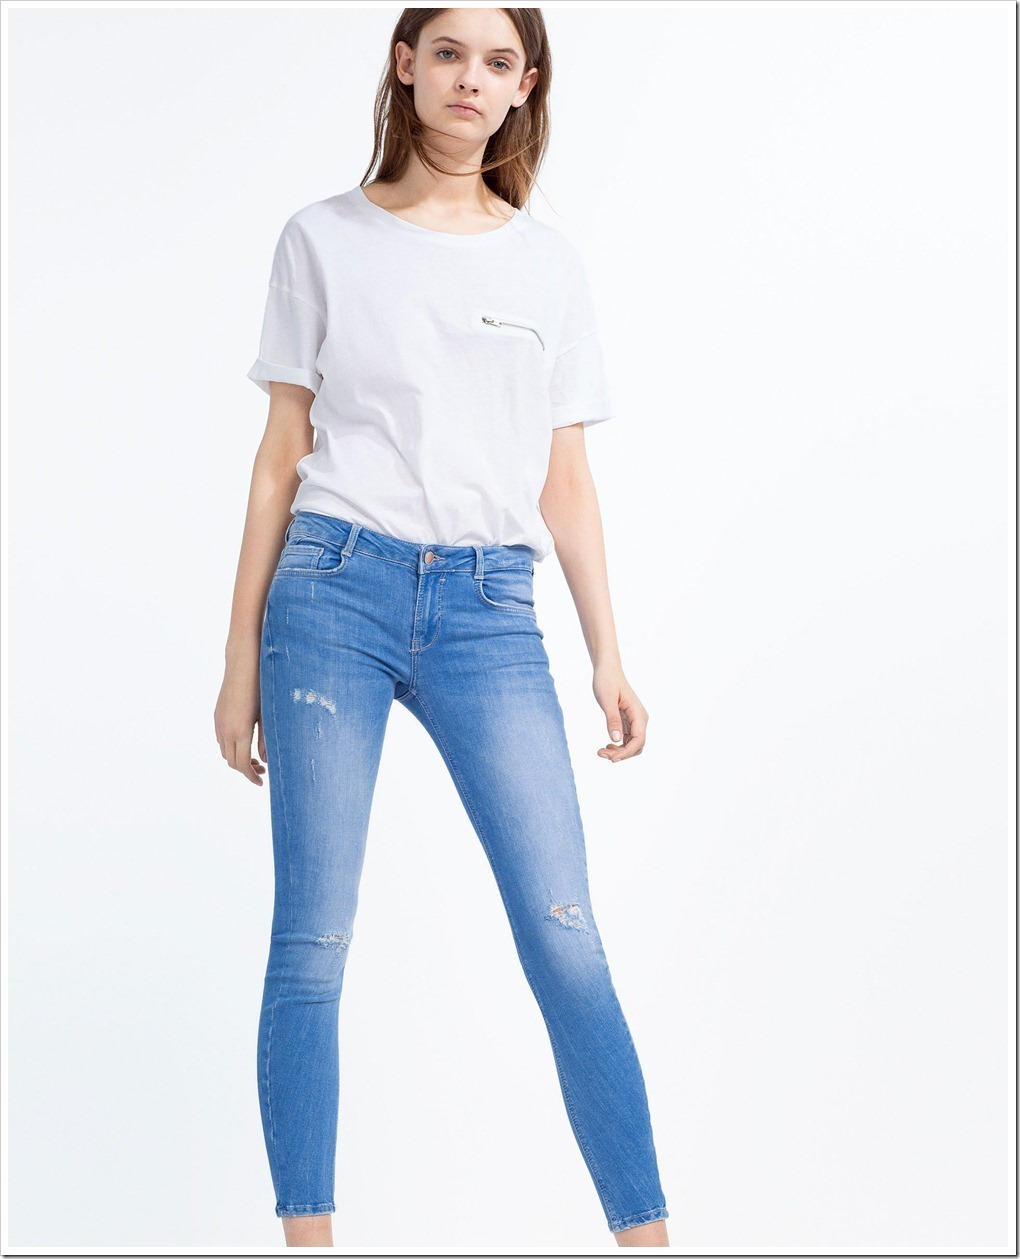 SS16 Denim styles from Zara  Zara Collection - Denim Jeans | Trends News and Reports | Worldwide